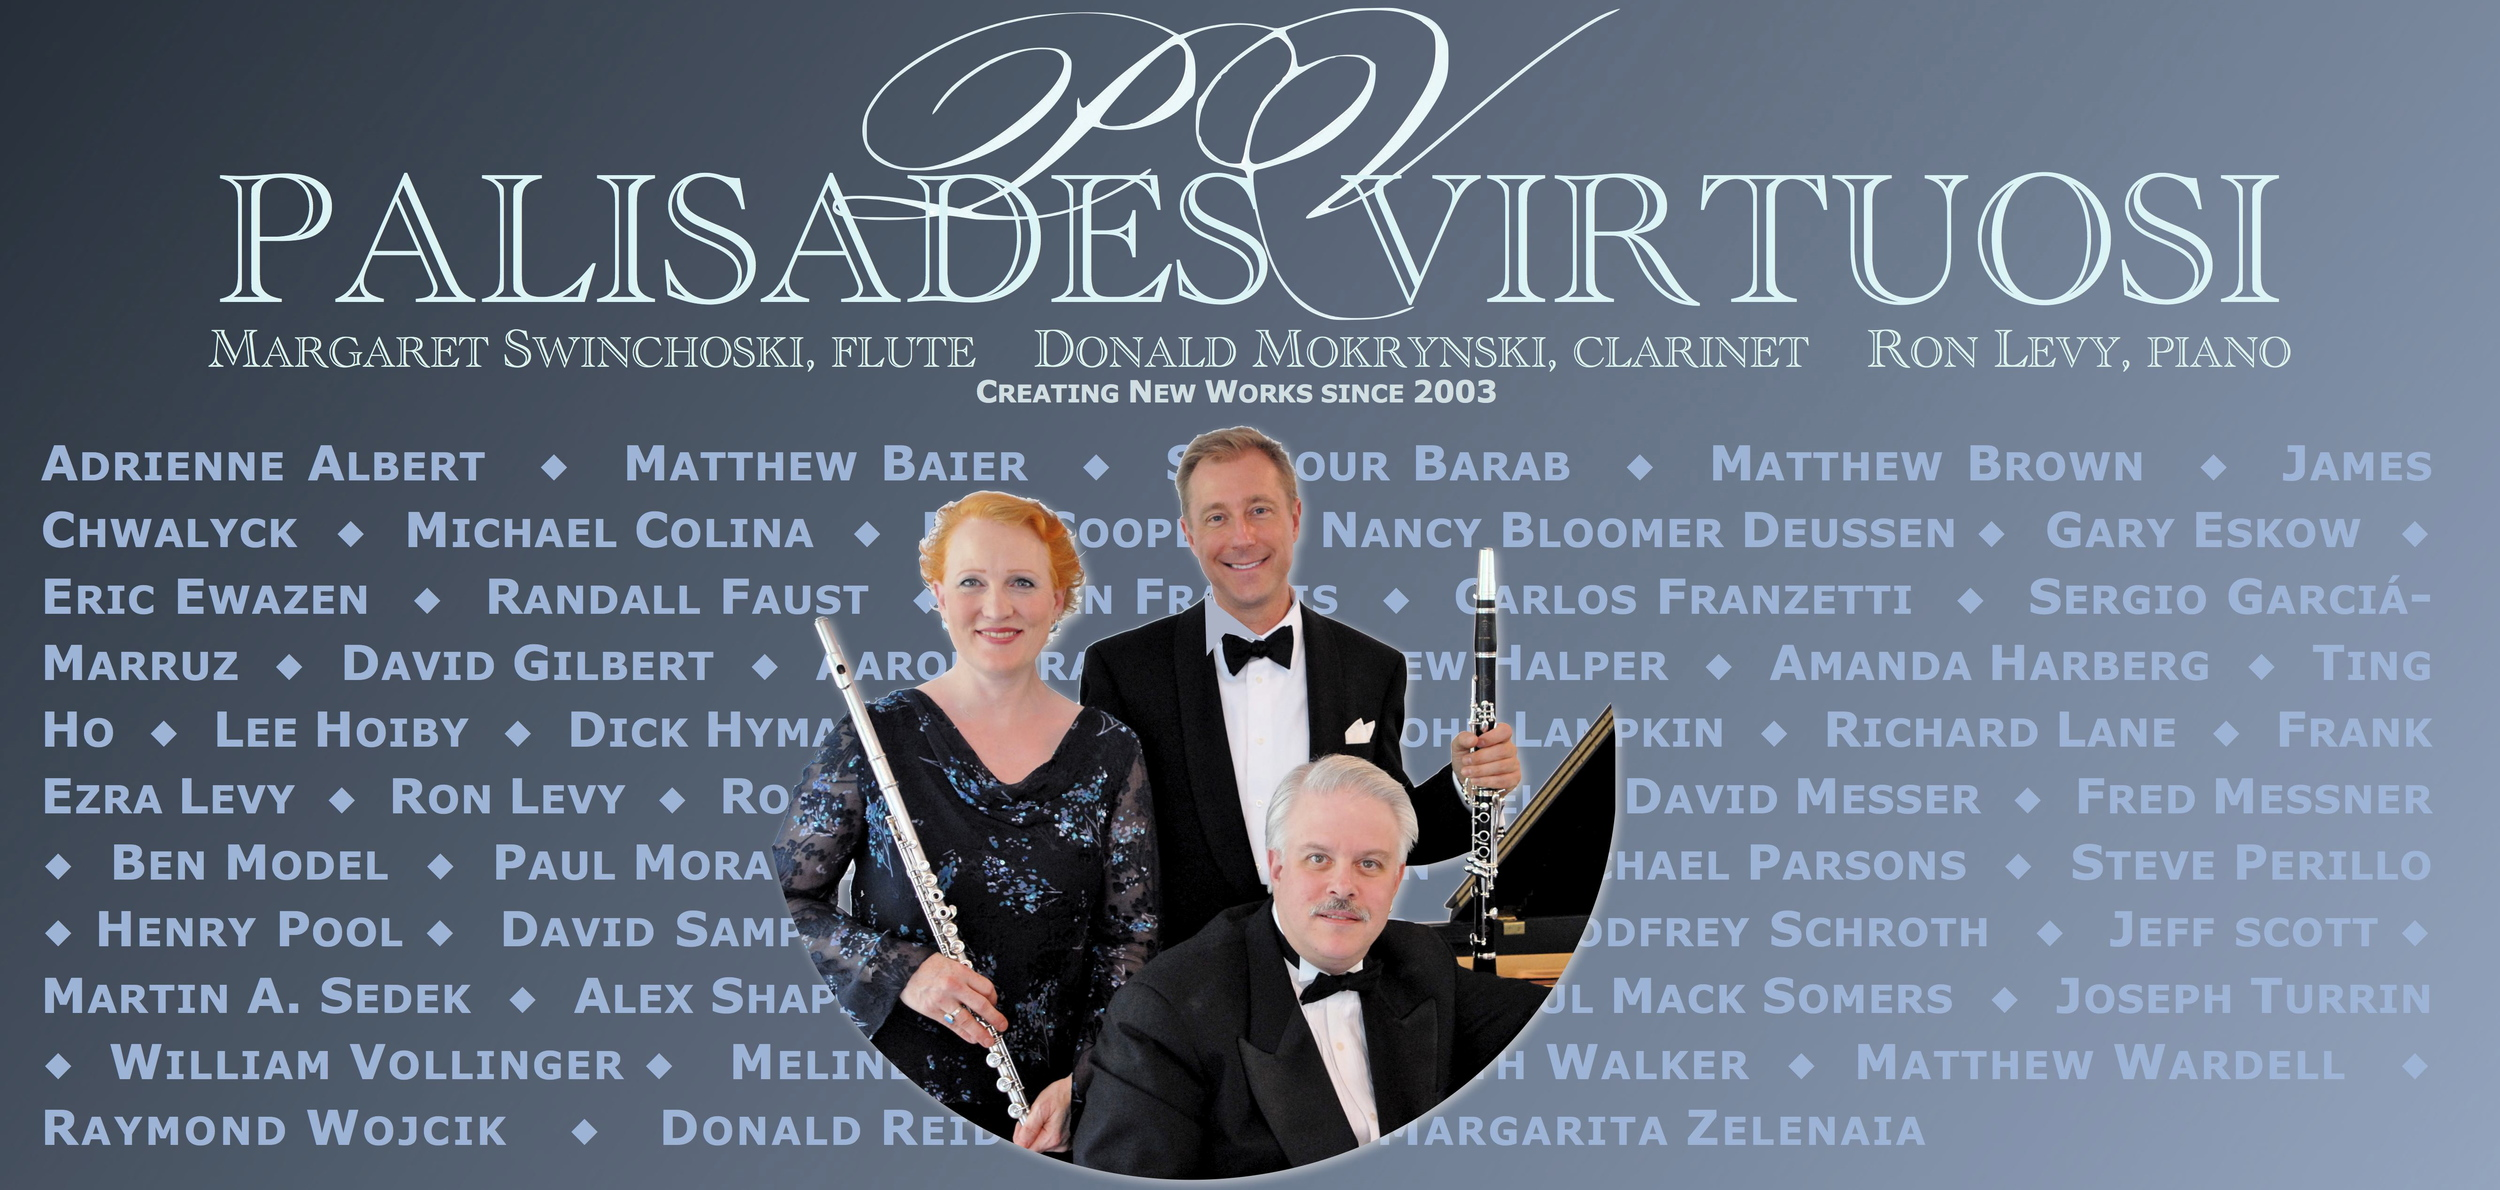 Visit the   PALISADES VIRTUOSI   website.